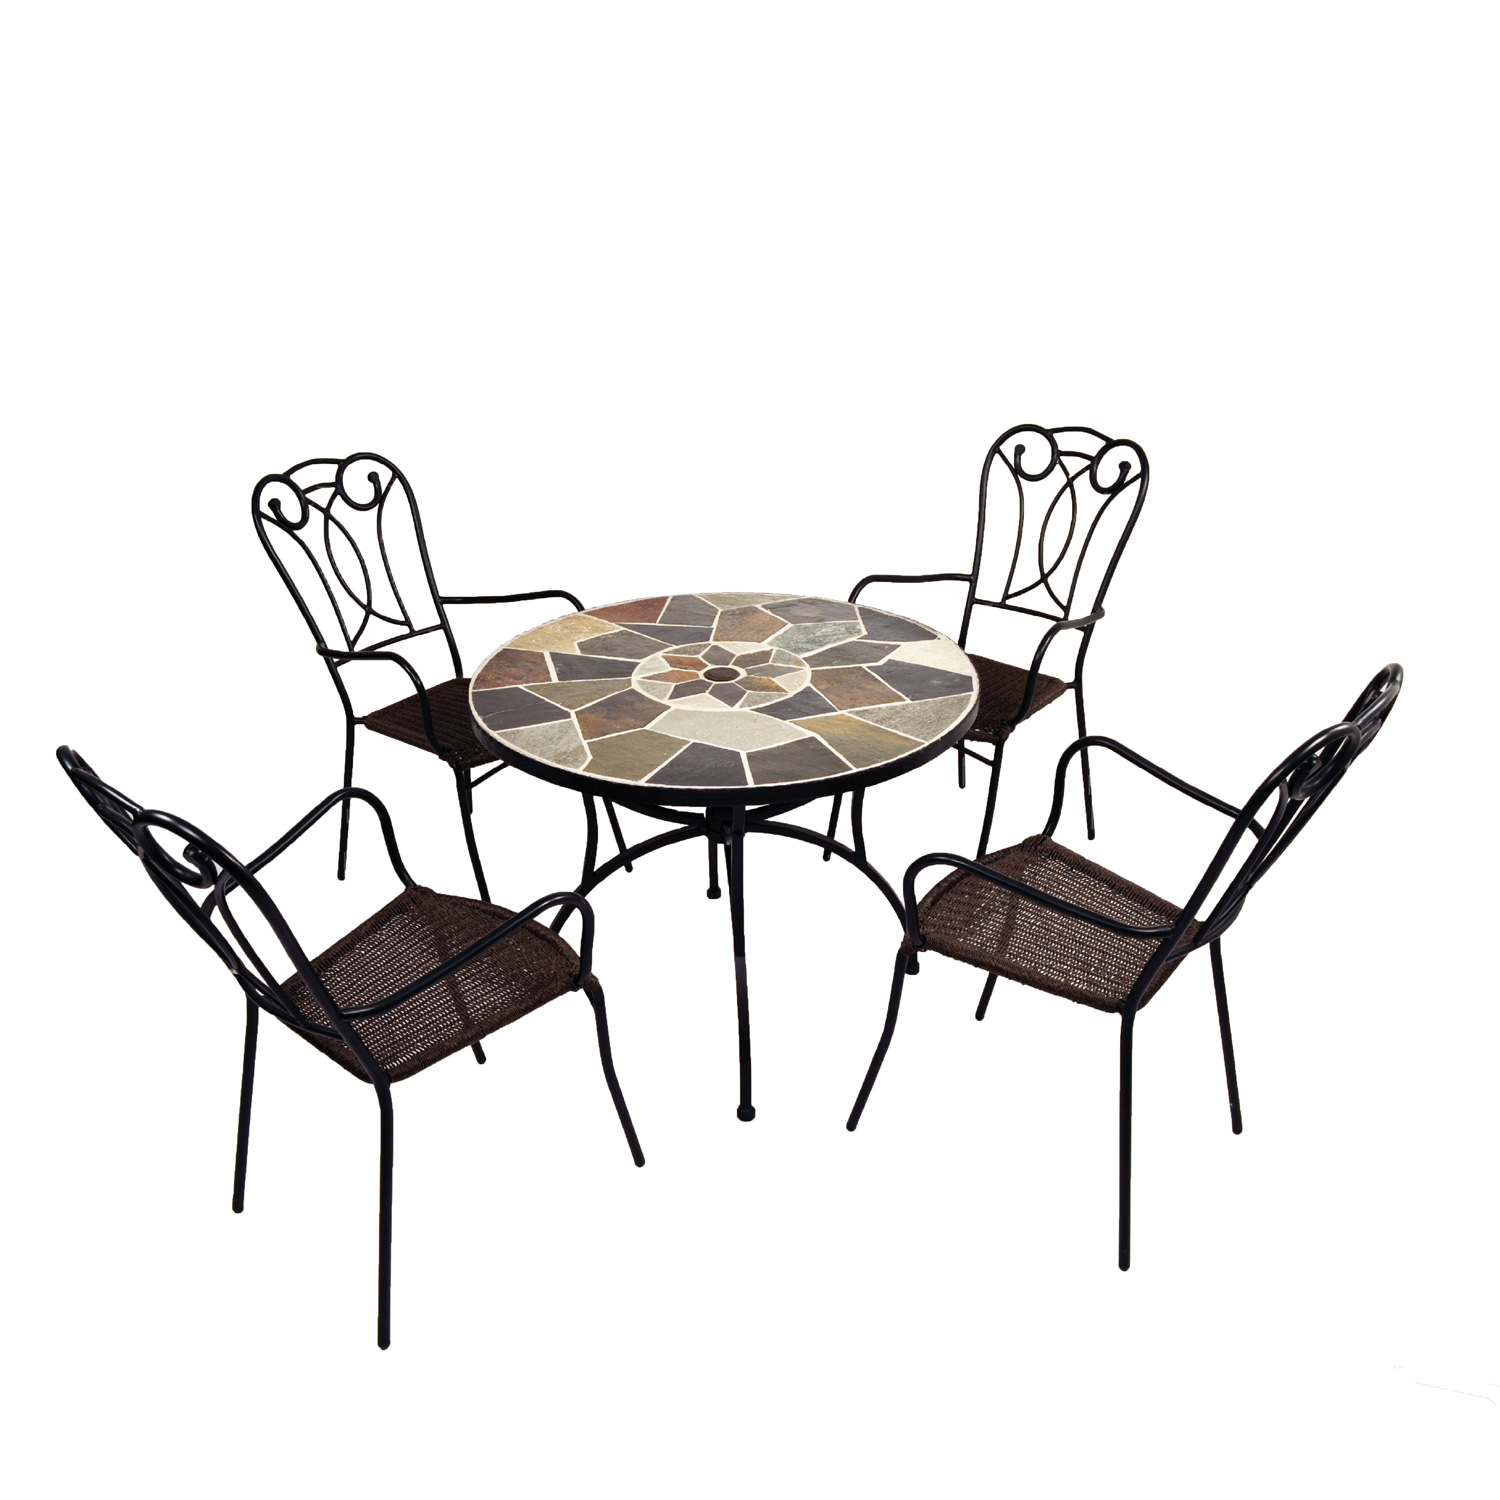 Pomino natural stone table with Verona chairs